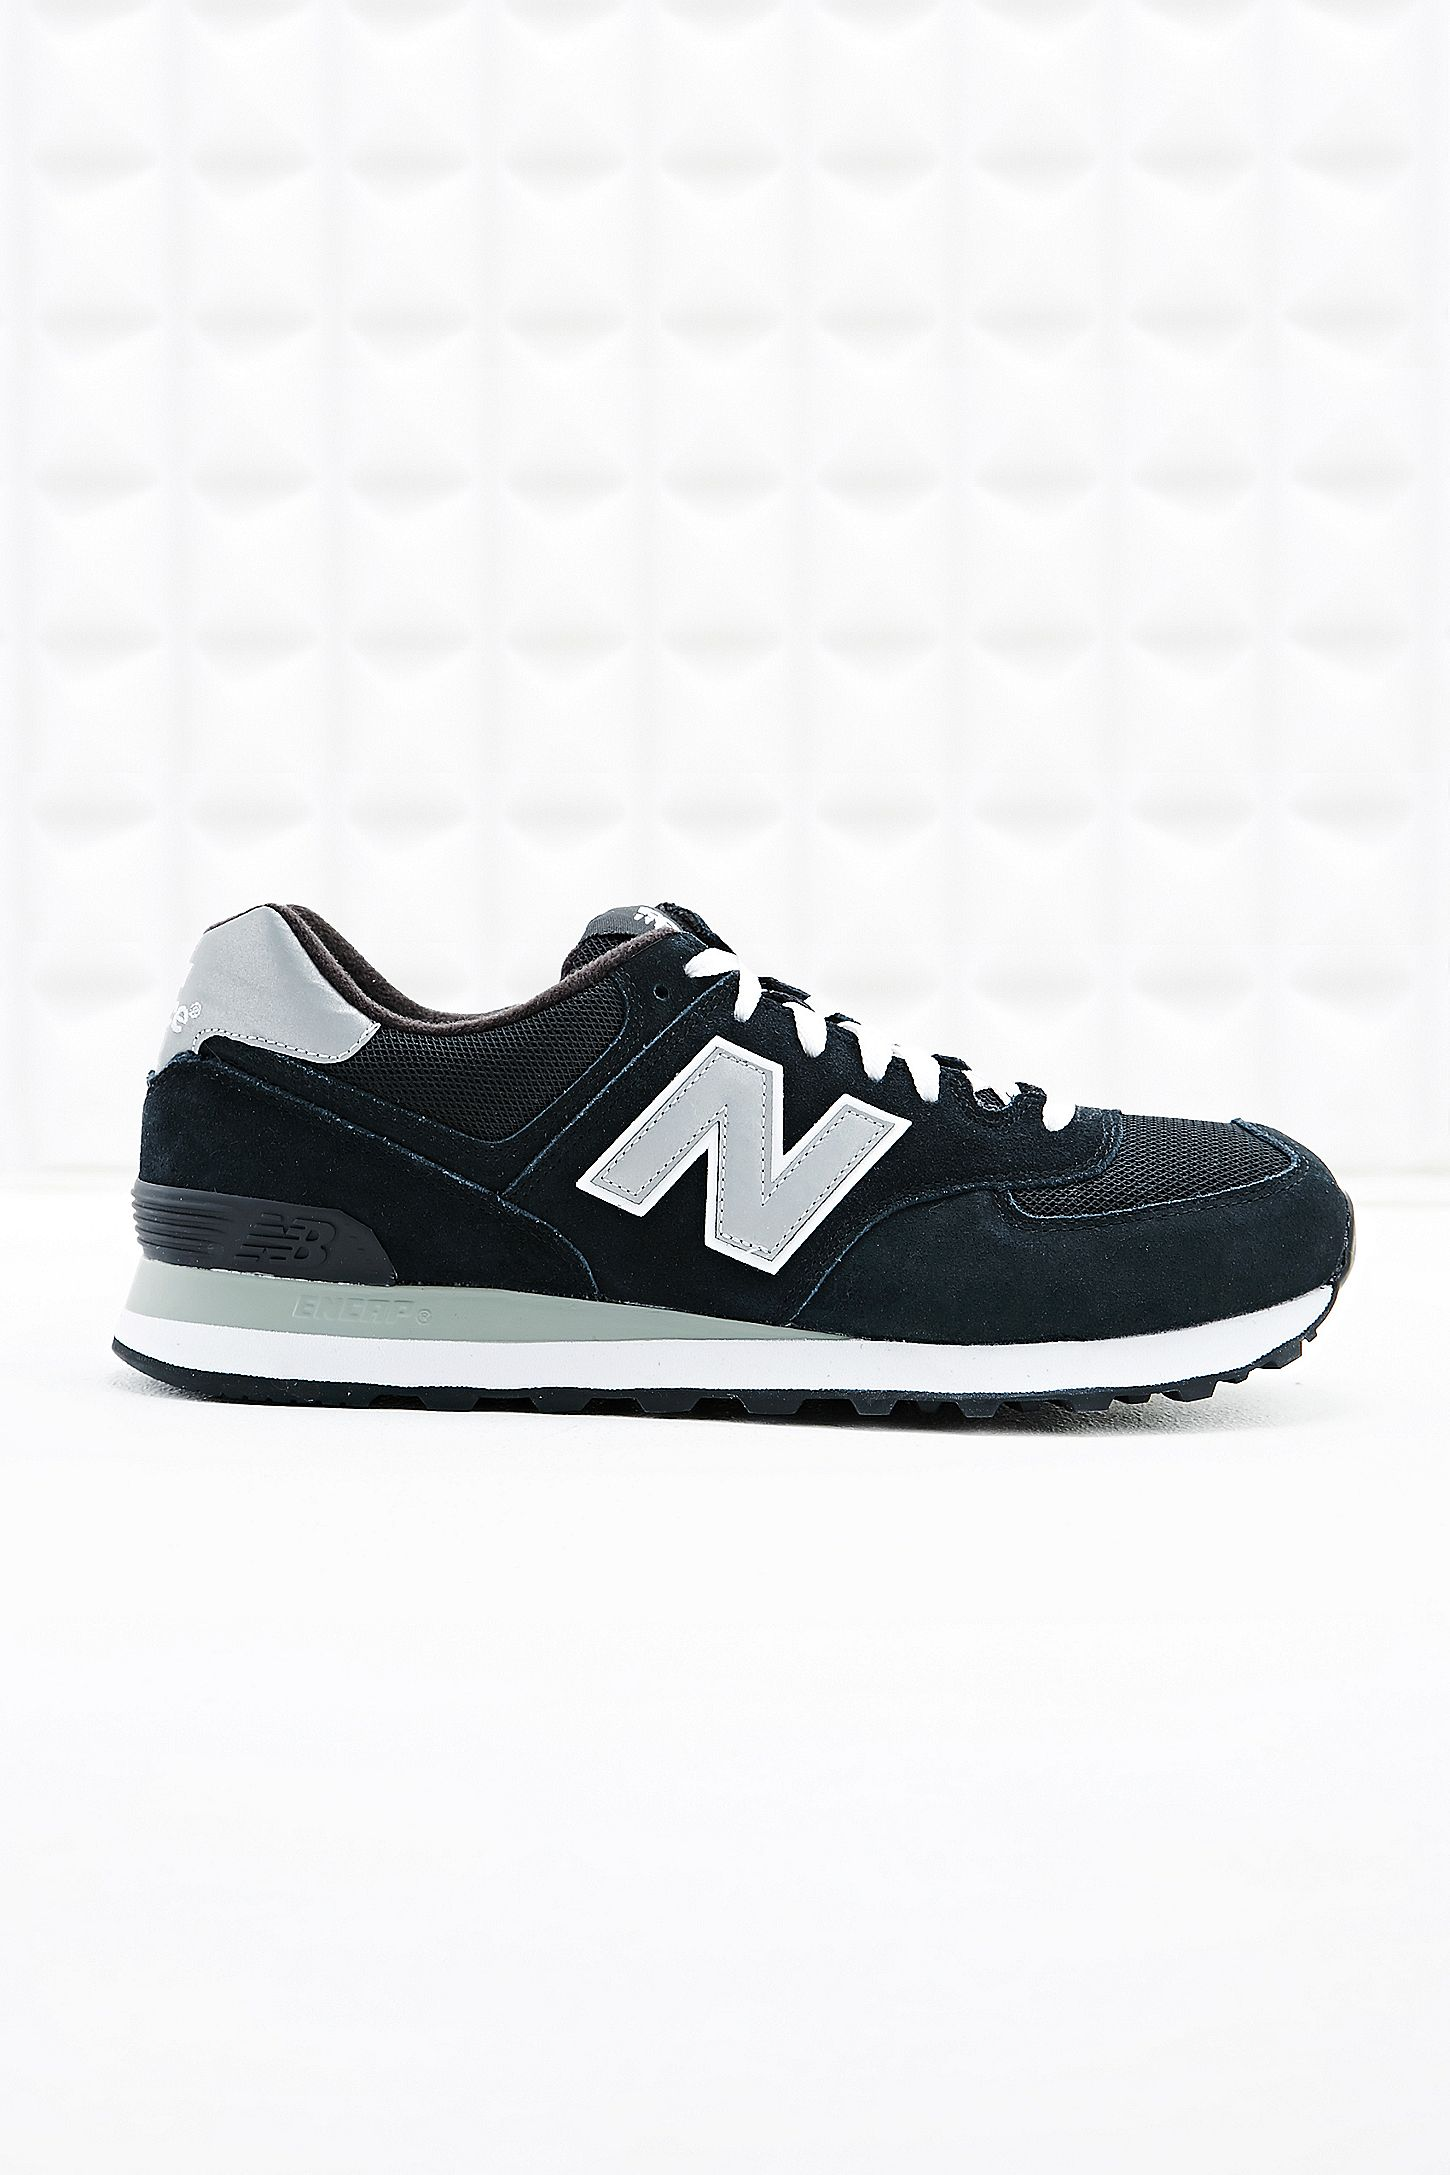 promo code d59d5 4e31f New Balance 574 Runner Suede Trainers in Black | Urban ...